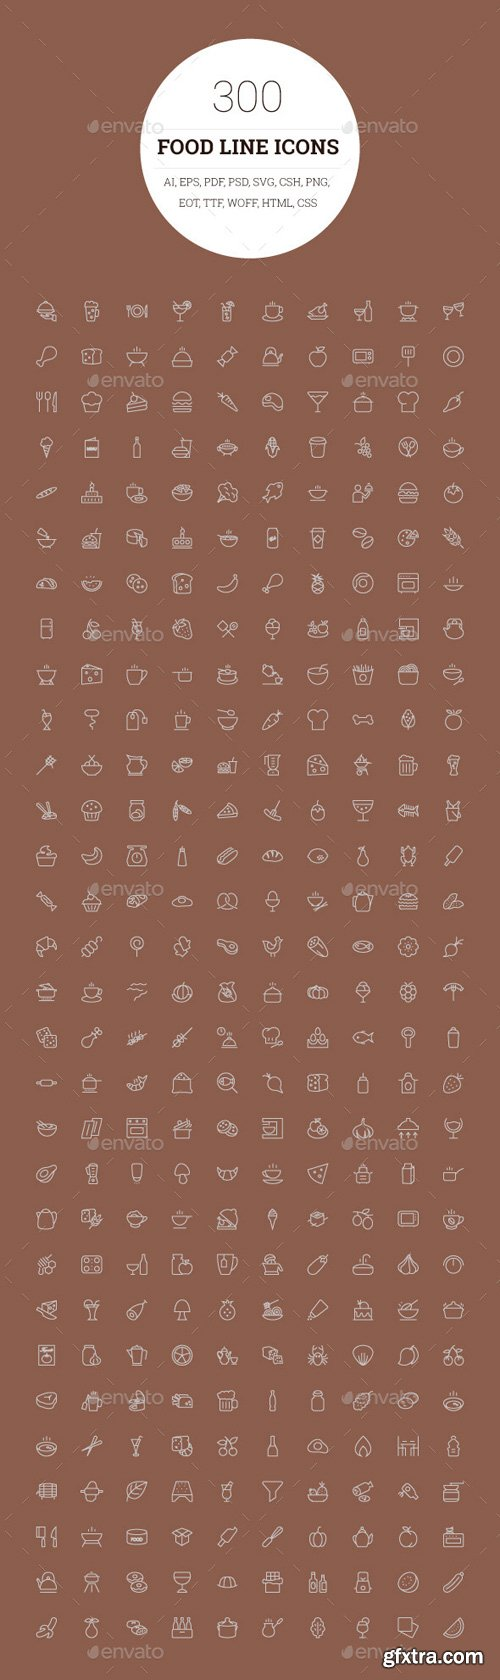 CM 114562 - 300 Food Line Icons